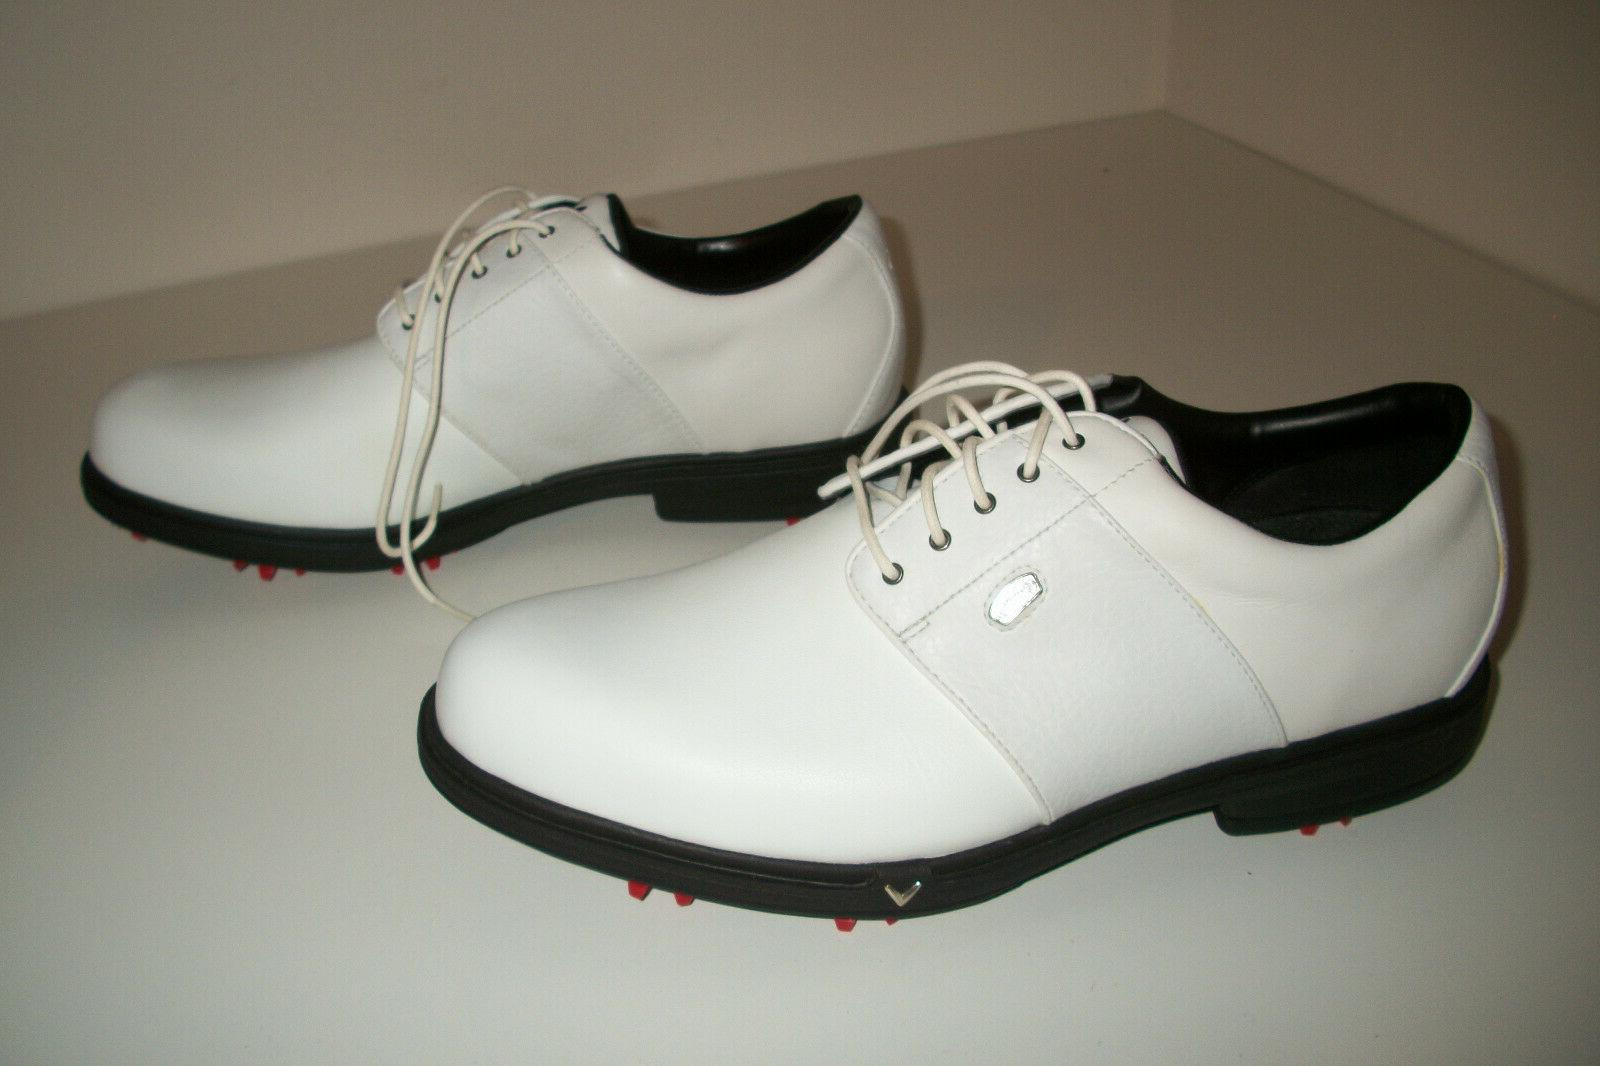 new golf shoes size 11 mens white